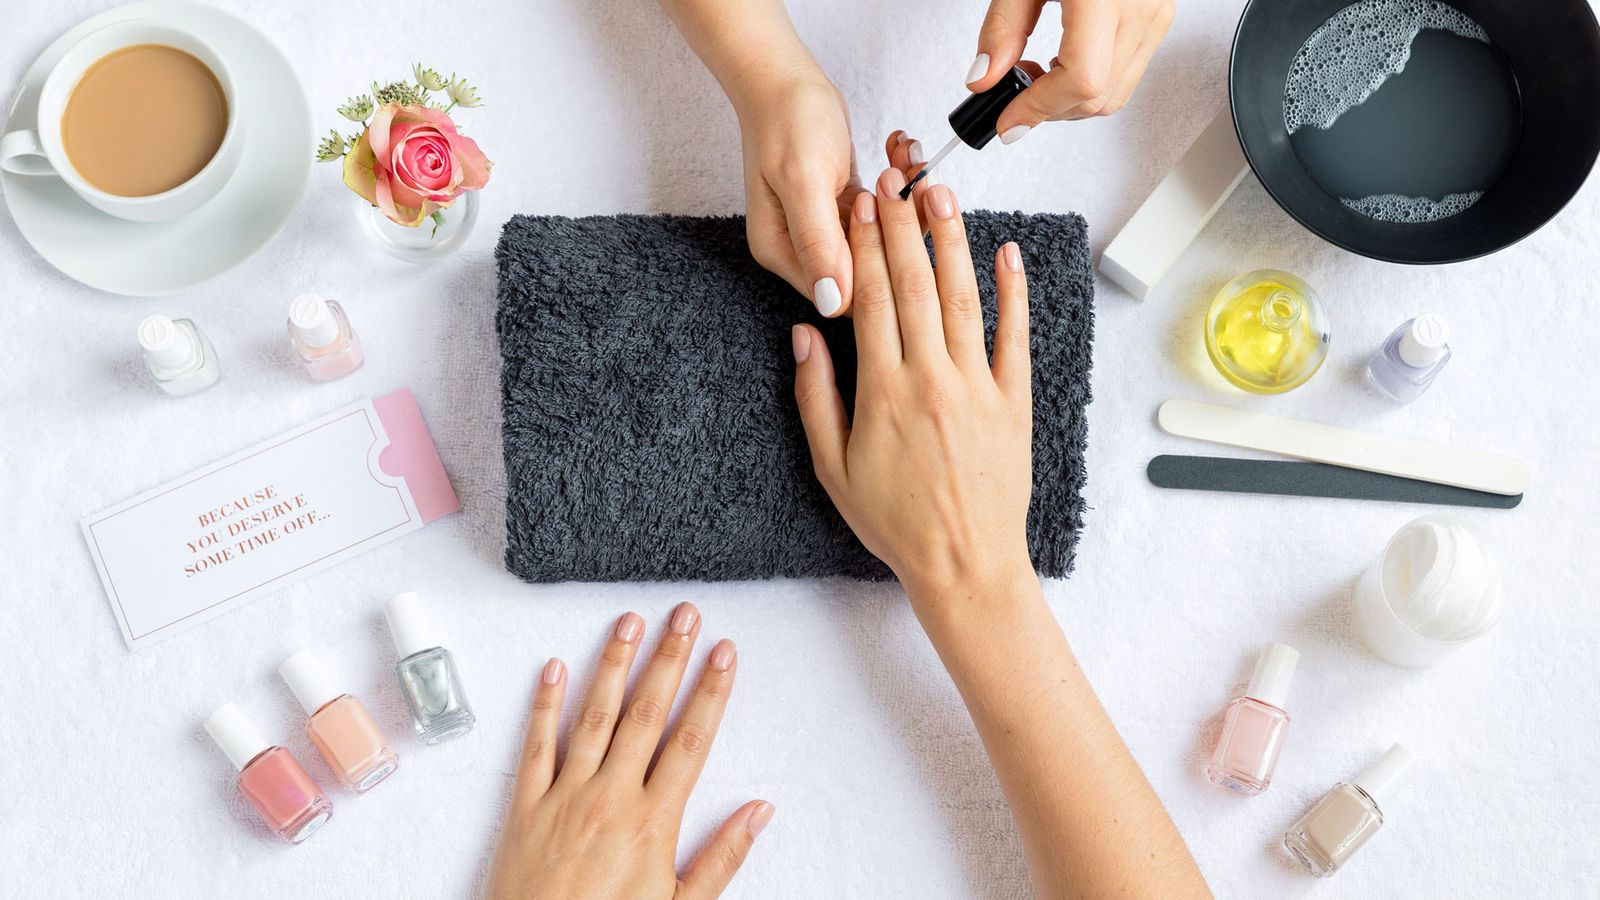 Manicures, Pedicures & Waxing at Home in London | LeSalon